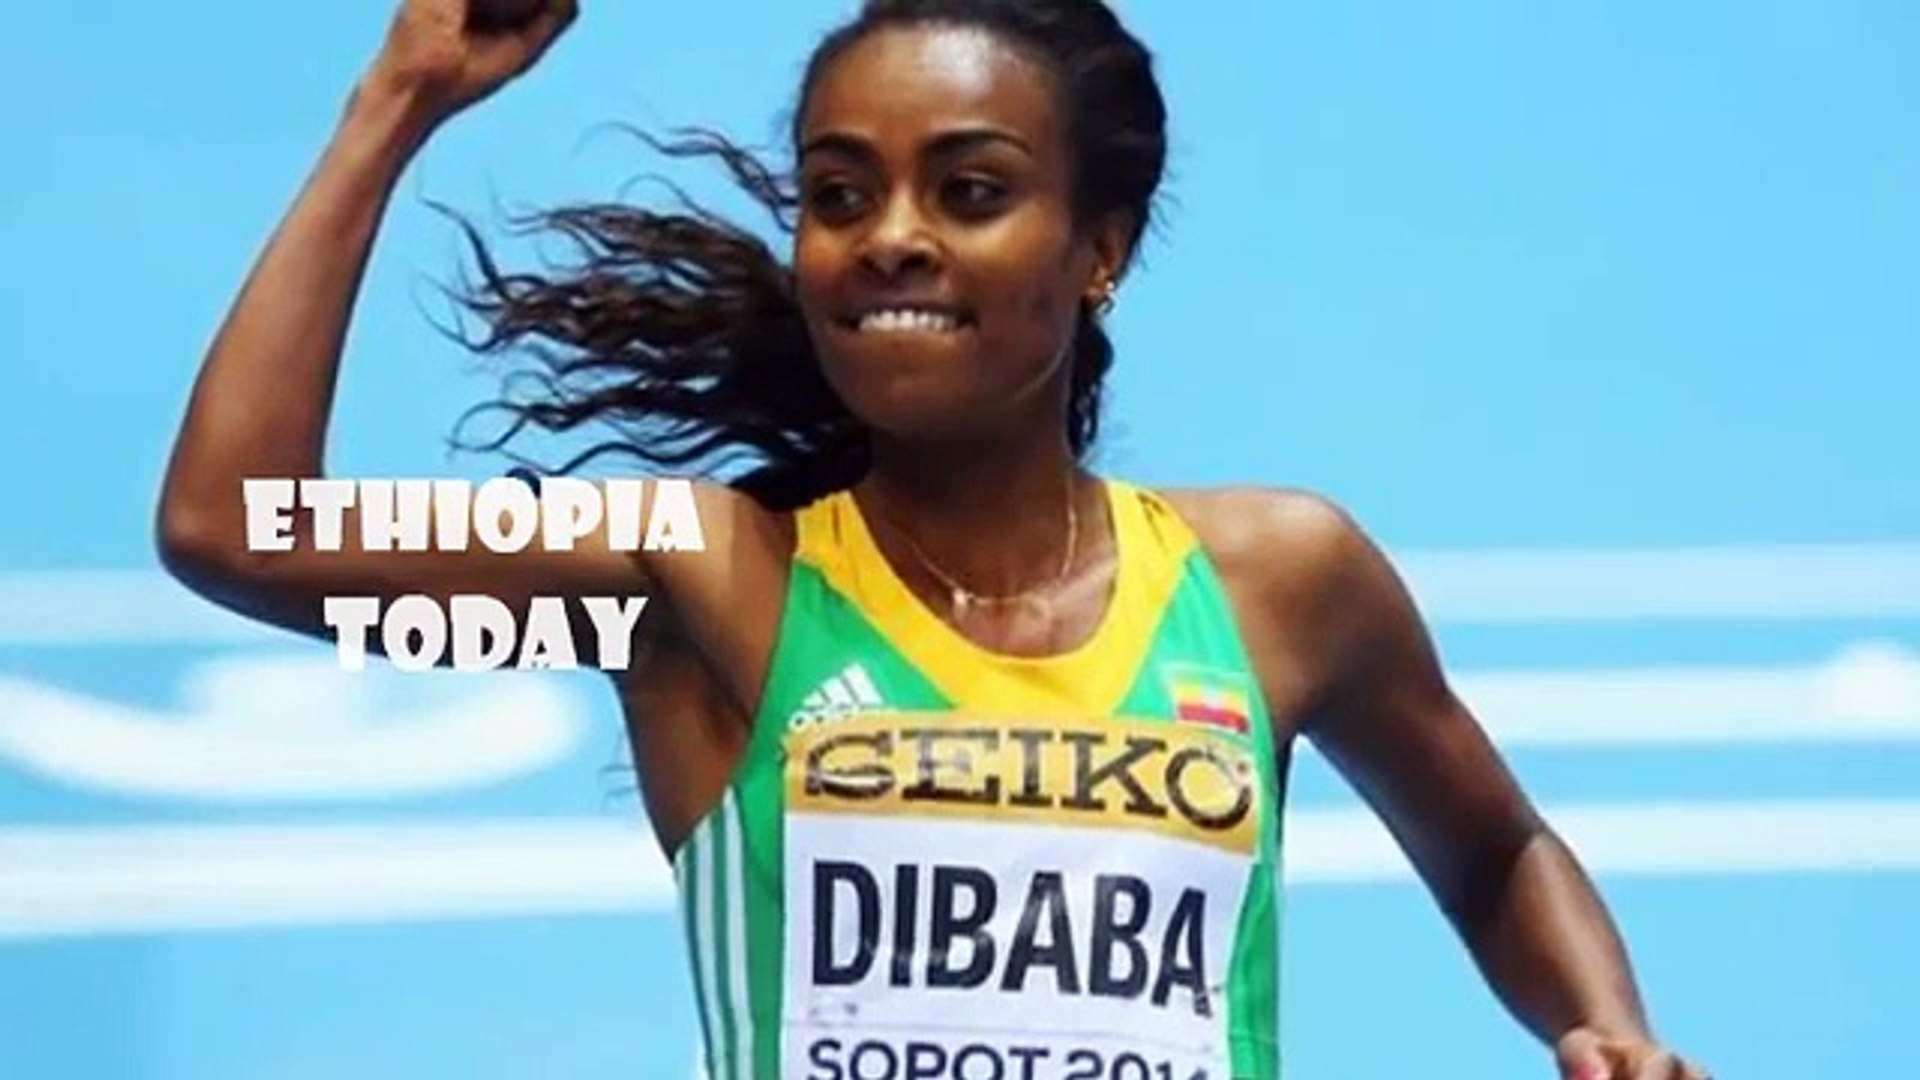 Ethiopia Today: Ethiopian Athlete Genzebe Dibaba with best Amaharic instrumental music